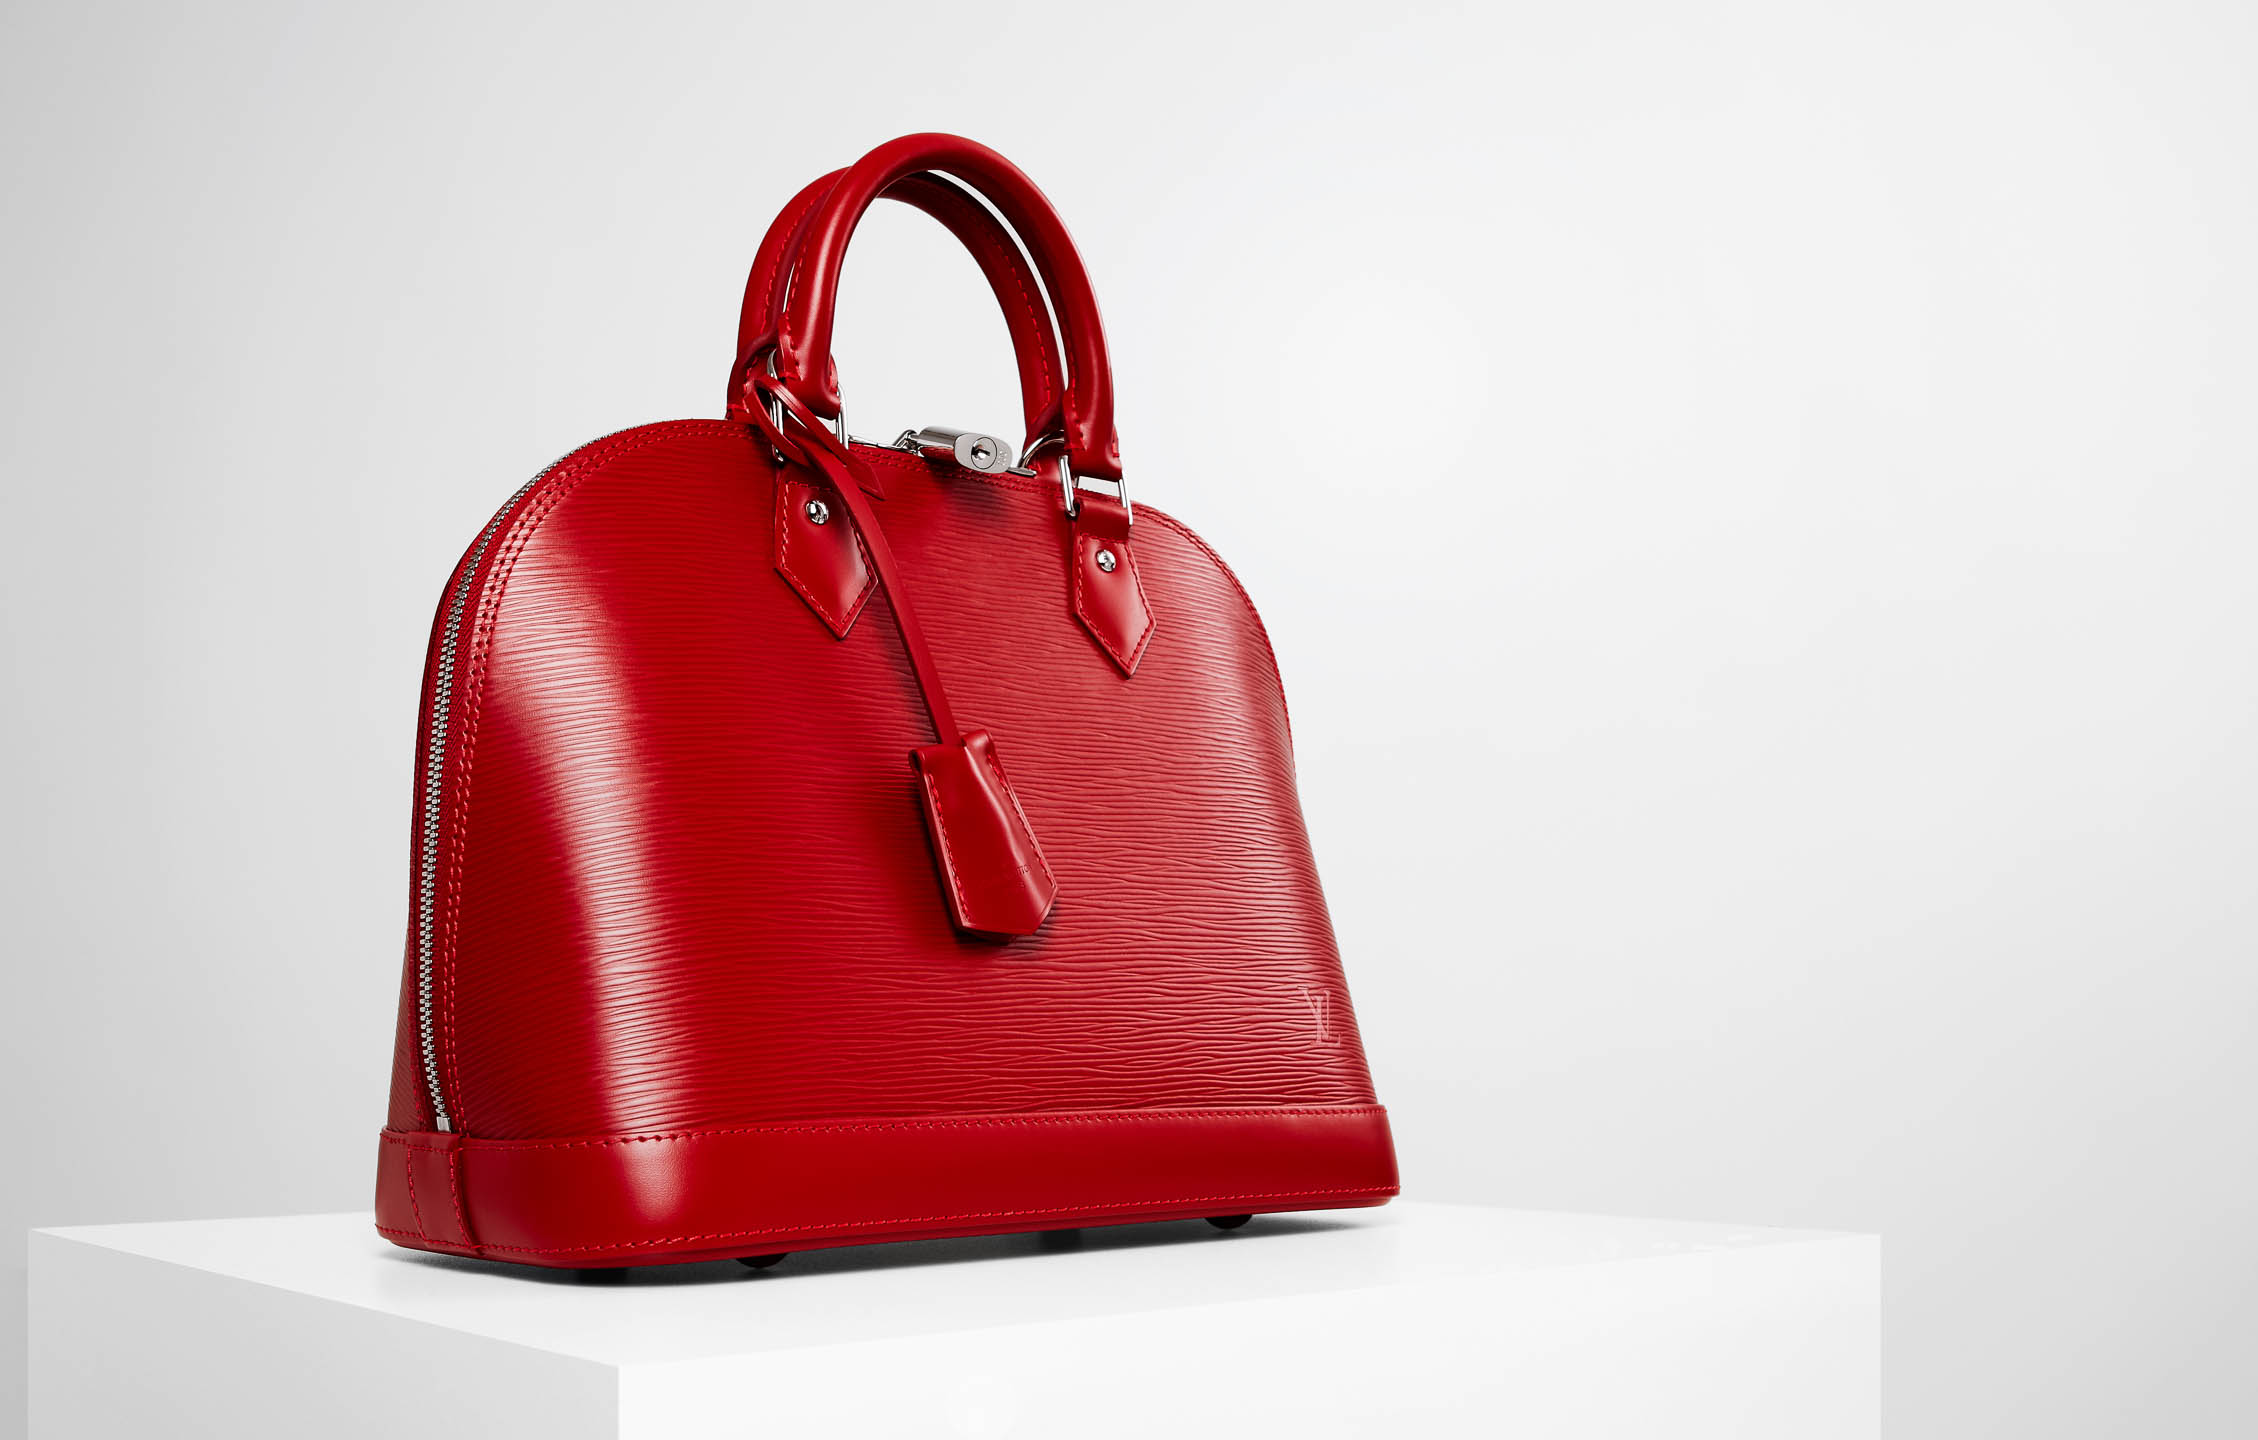 Louis Vuitton red Alma handbag by Steve Temple Photography